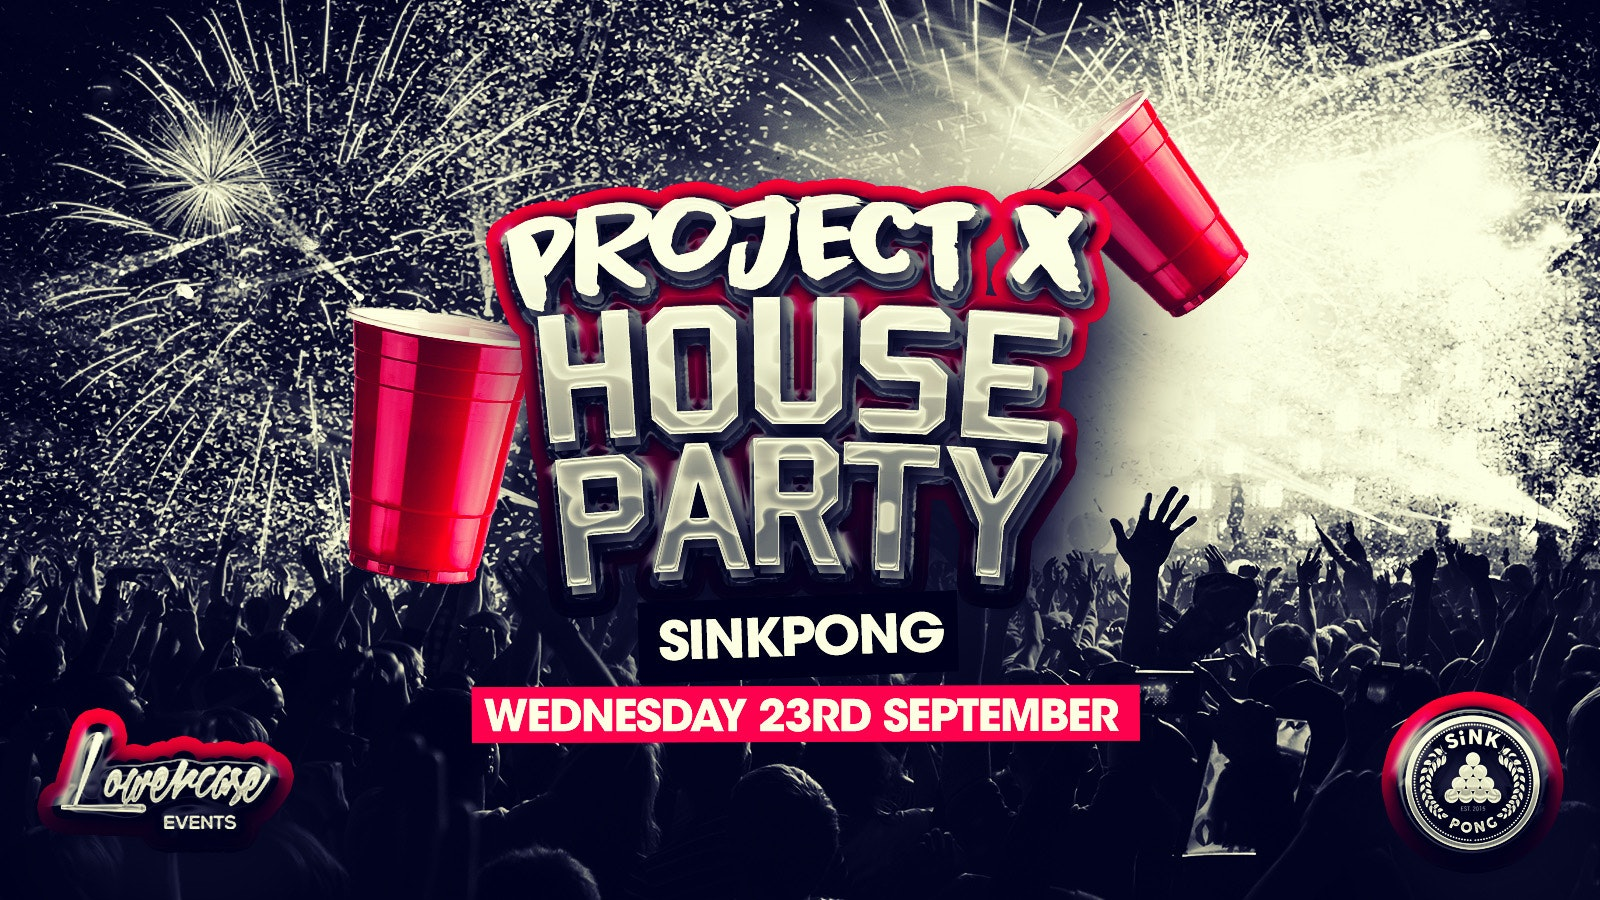 The Socially Distanced Project X House Party @ SiNK PONG – ONLY 200 TICKETS ON SALE!